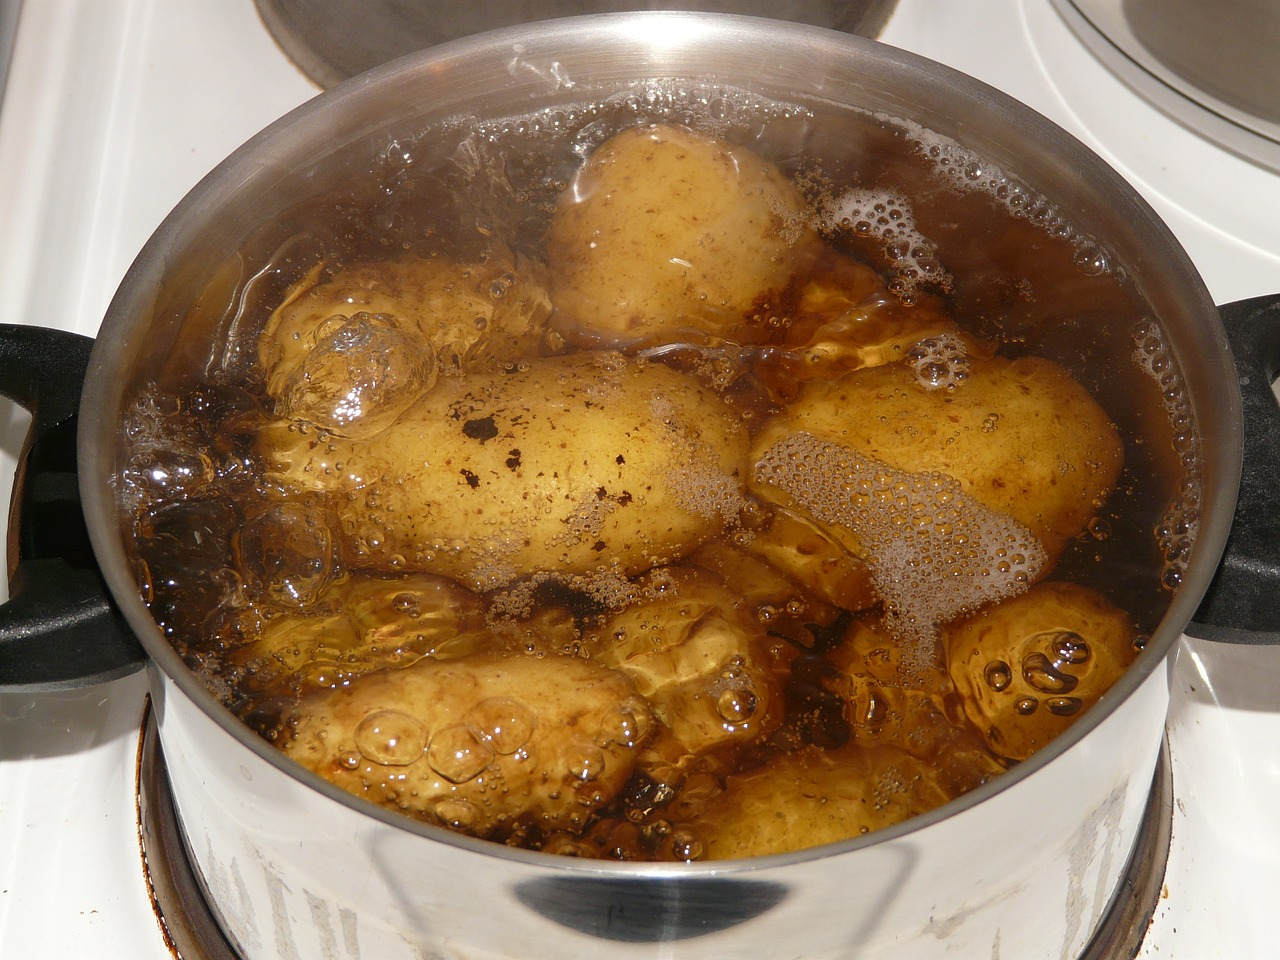 water from boiled potatoes shouldn't be thrown away